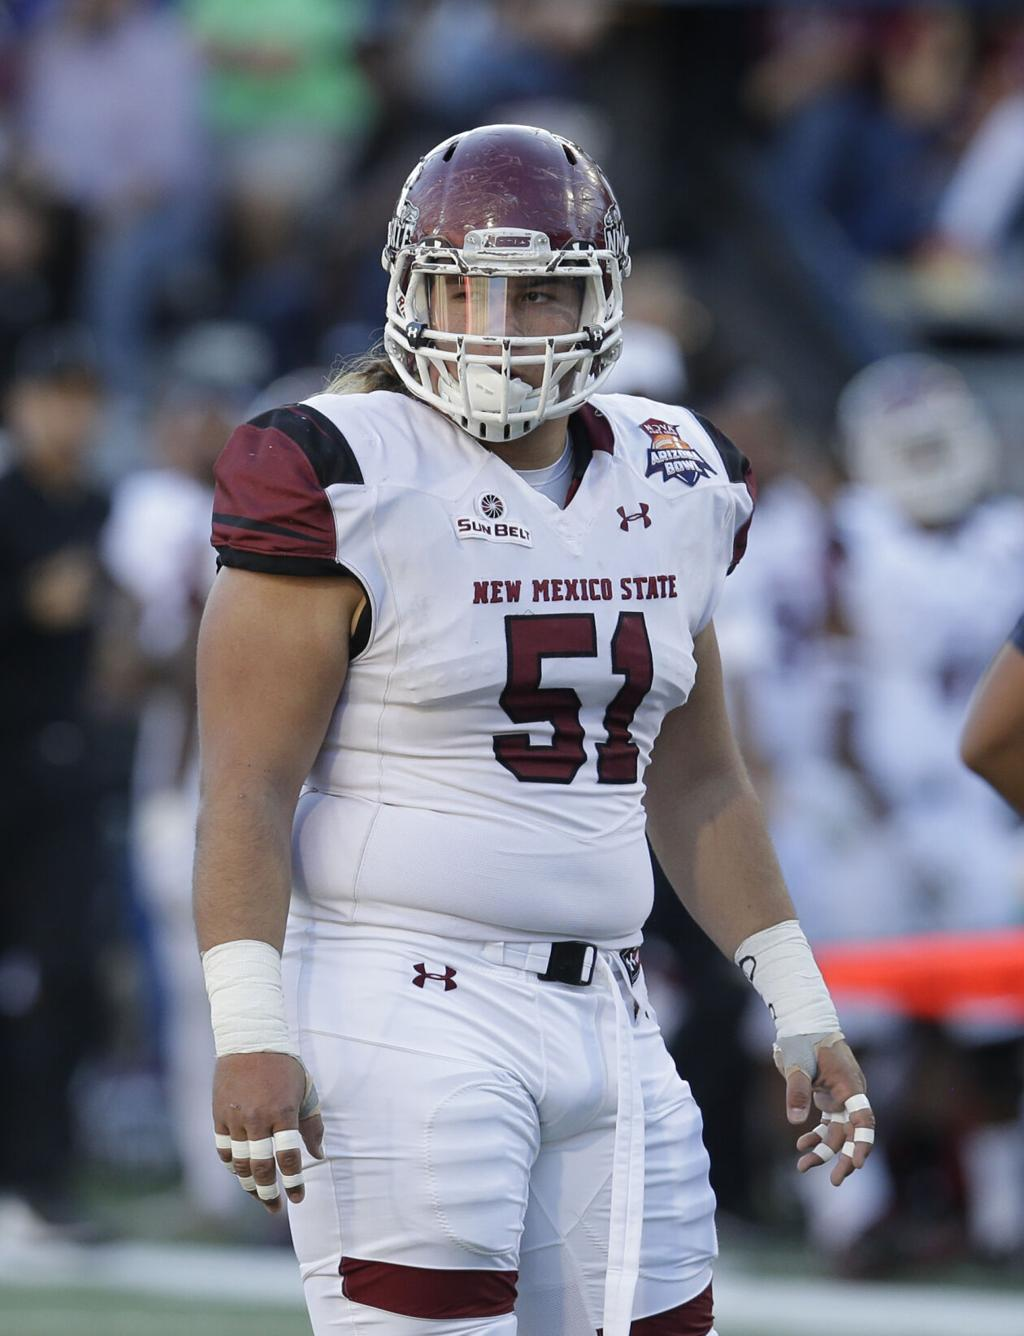 Arizona Wildcats Add New Mexico State Dl Roy Lopez For 2020